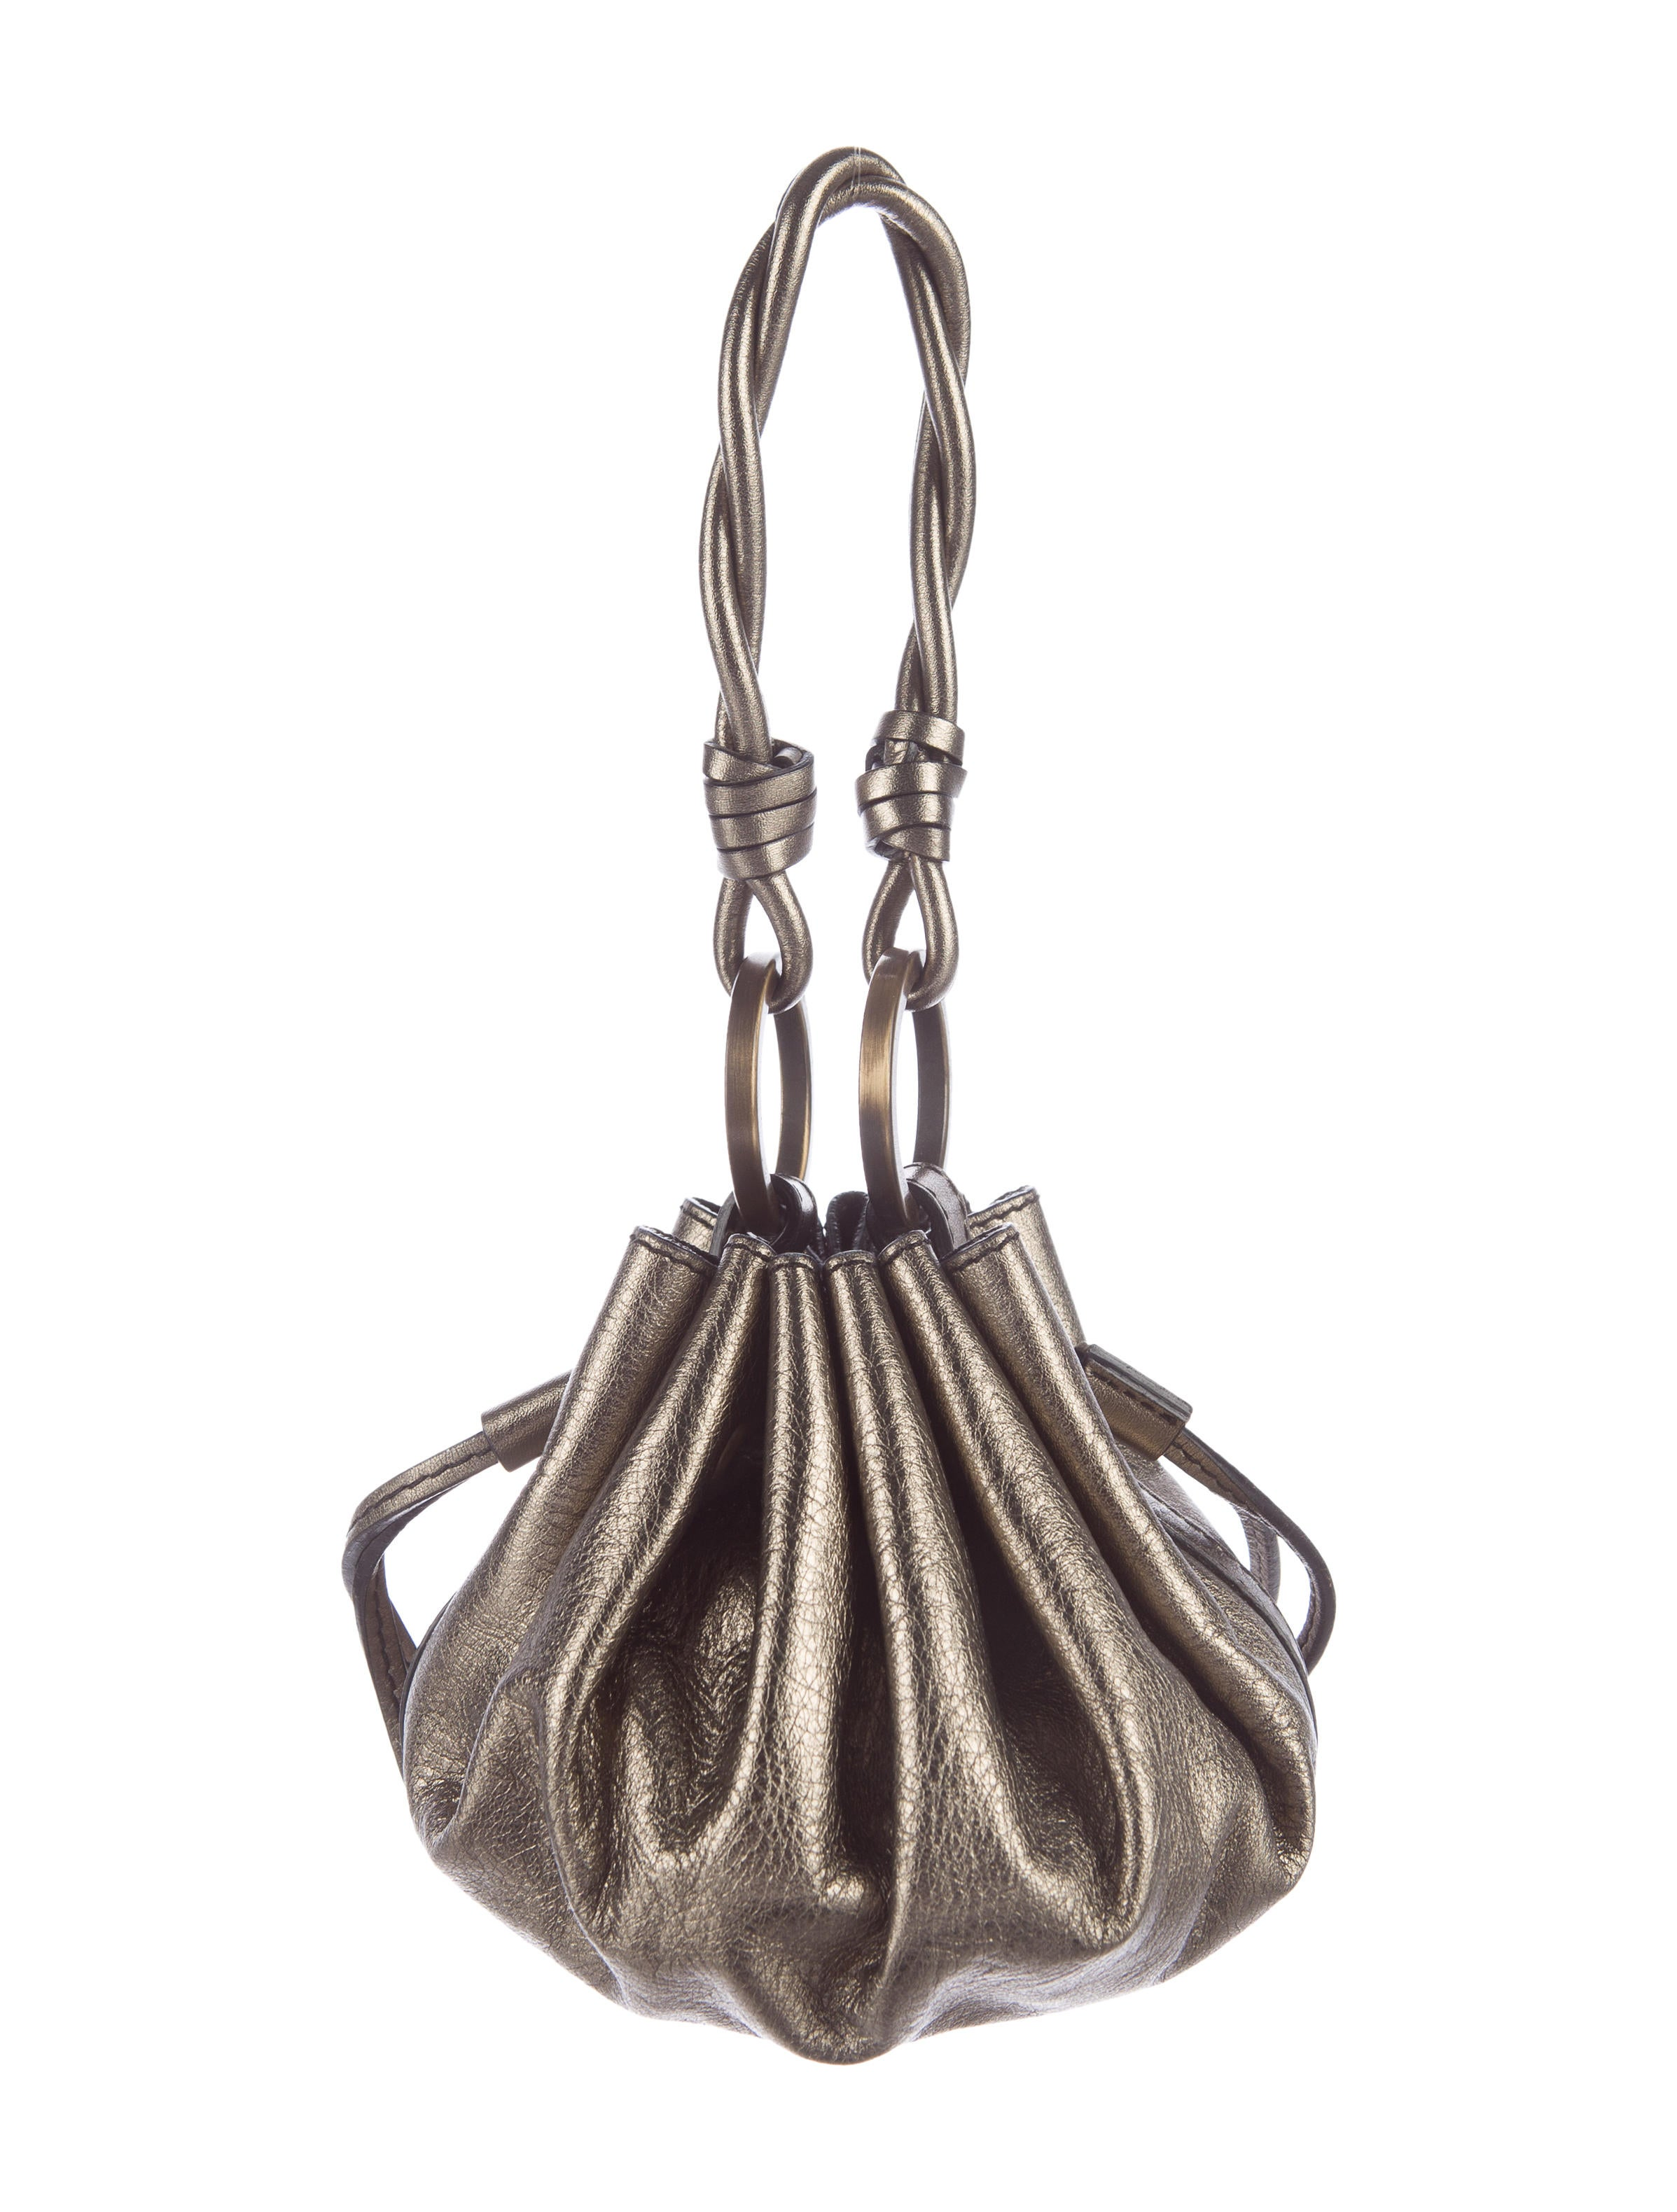 Givenchy Metallic Leather Drawstring Bag Handbags